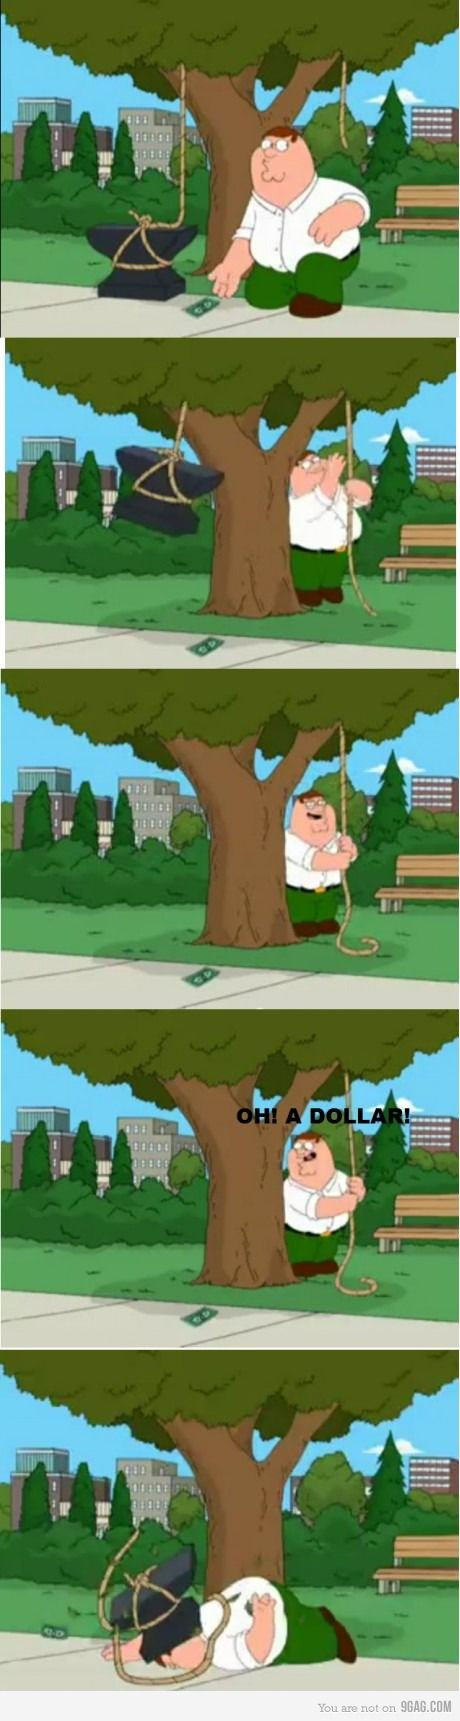 Peter Griffin is the oft drunk patriarch of his family but he is thwarted by his toddler son and is not respected by his kids.